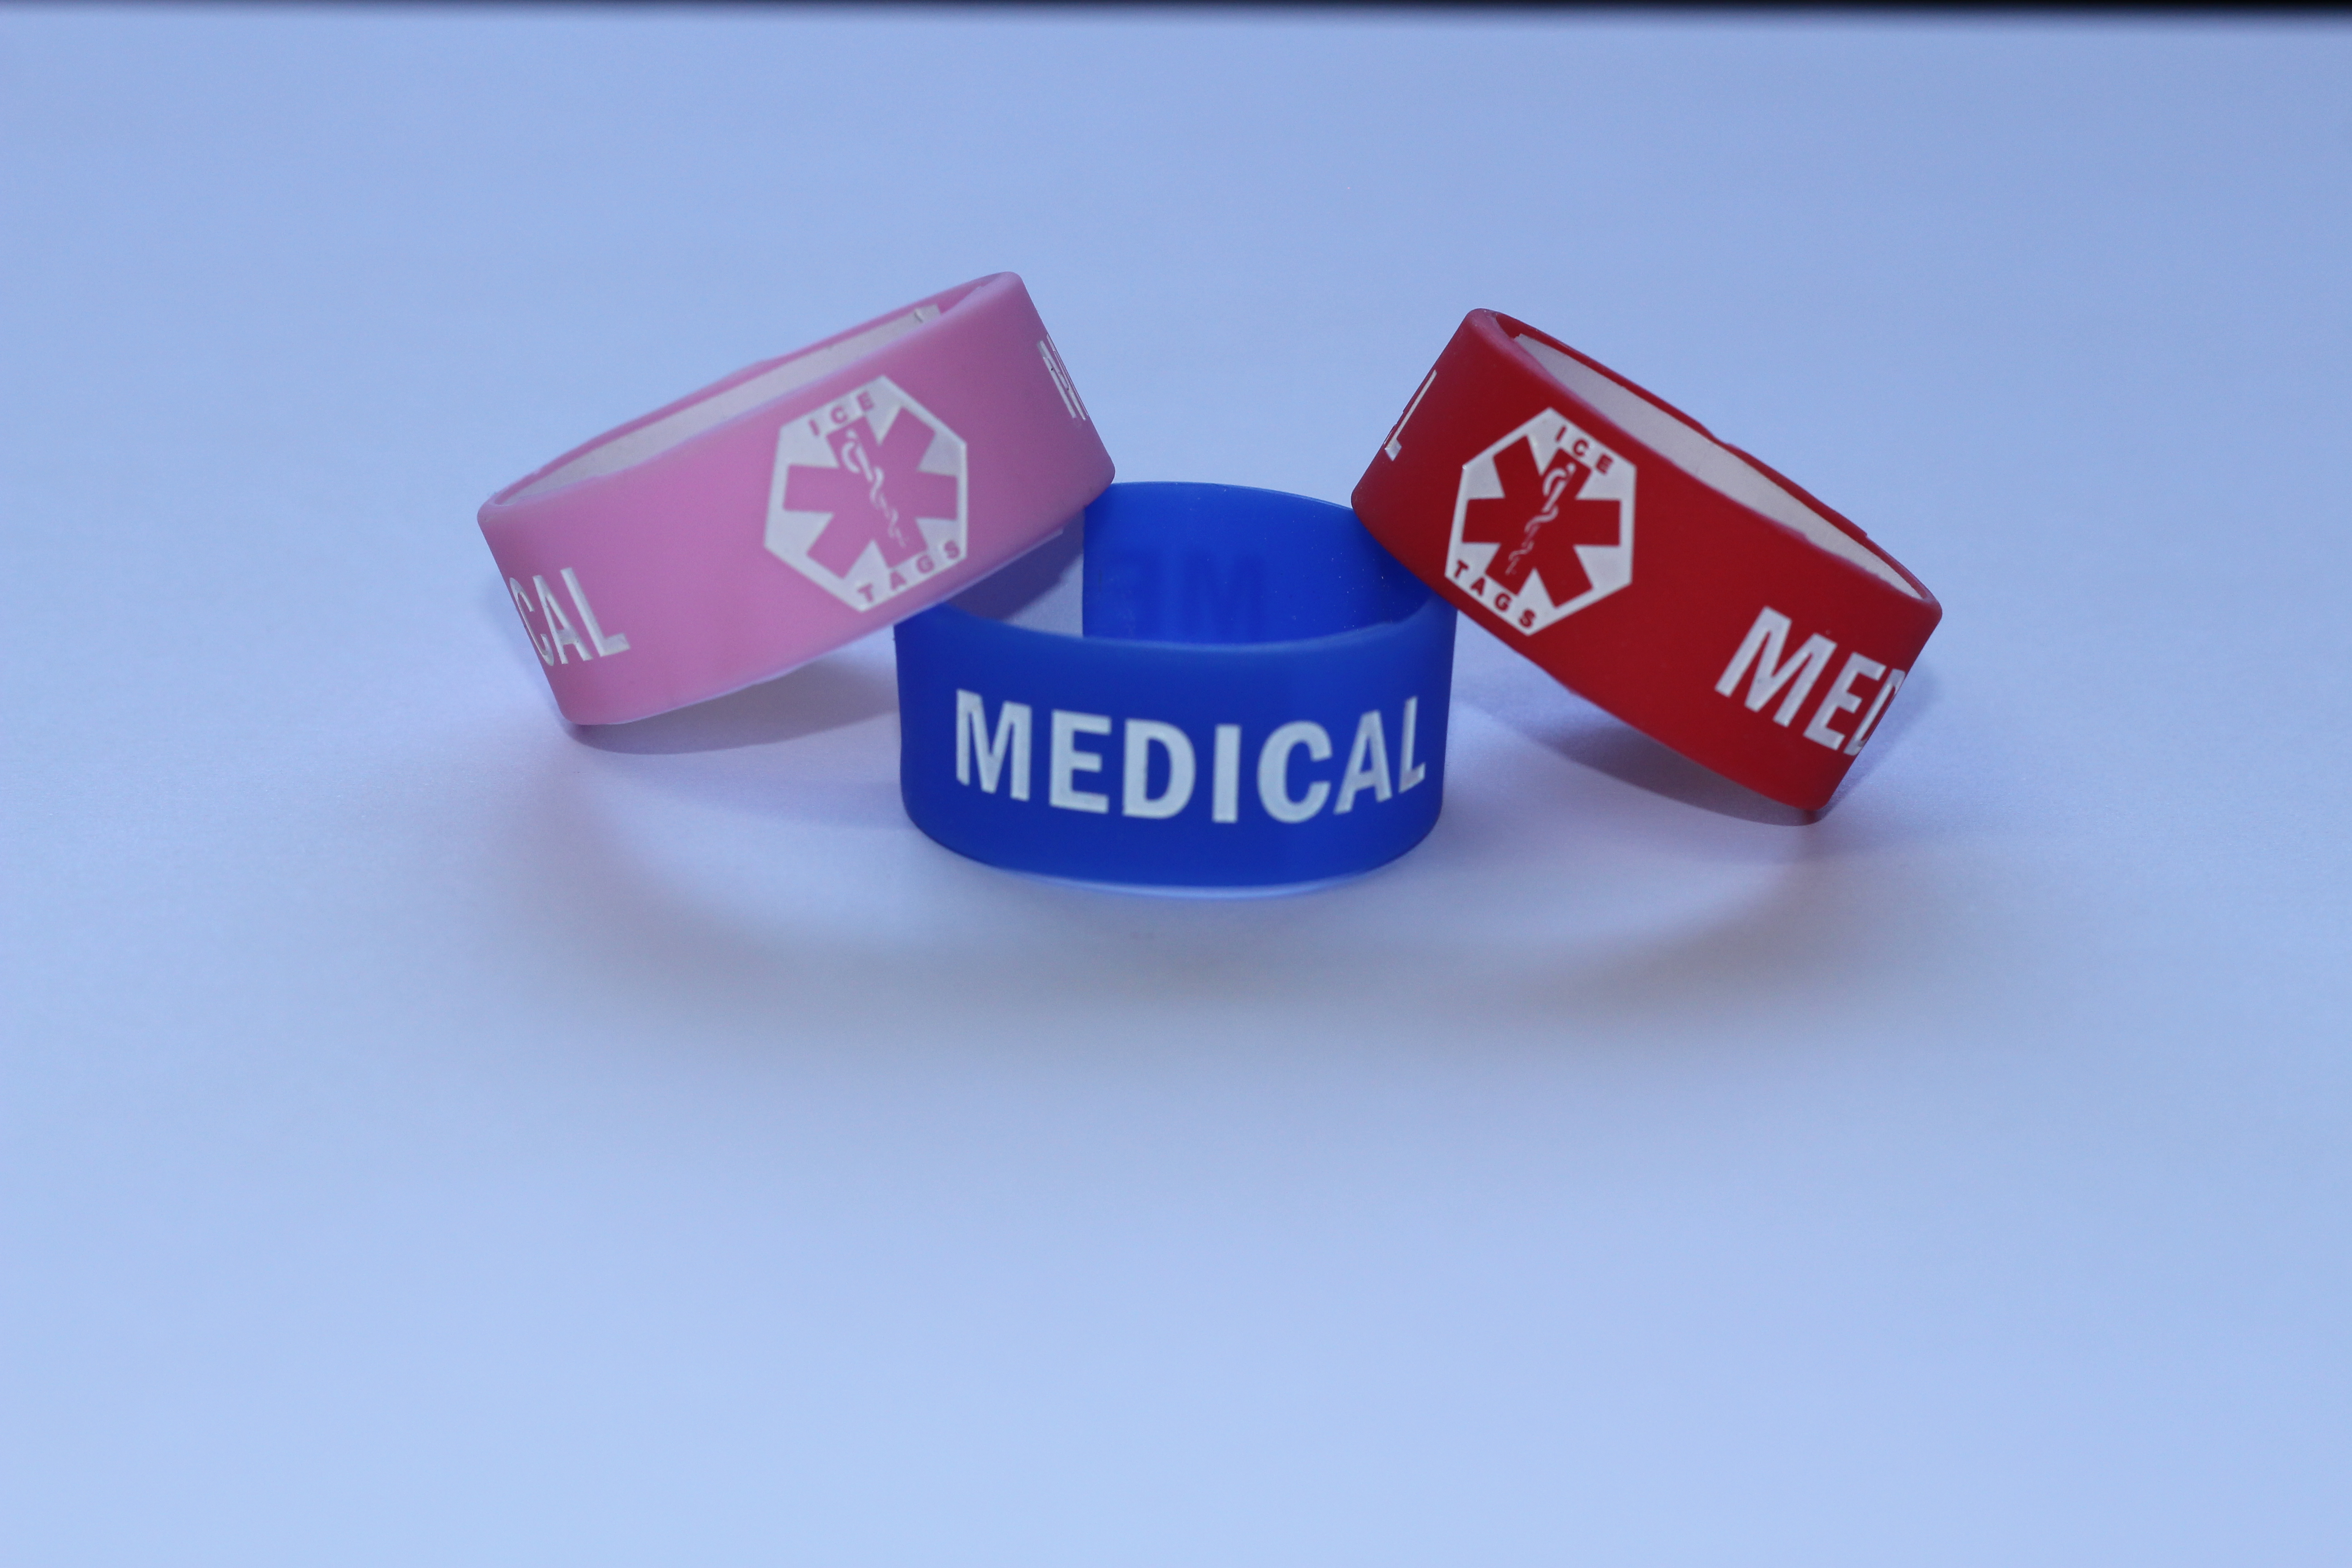 INFANT WRITABLE SILICONE BAND (TRI-PACK) - Identification, Medical Information, Allergy… can be written on the back of the Writable Sili-cone Band. - Available in Pink, Blue and Red. - Sizes: 12cm to 14cm in circumference. - Pack includes three bands